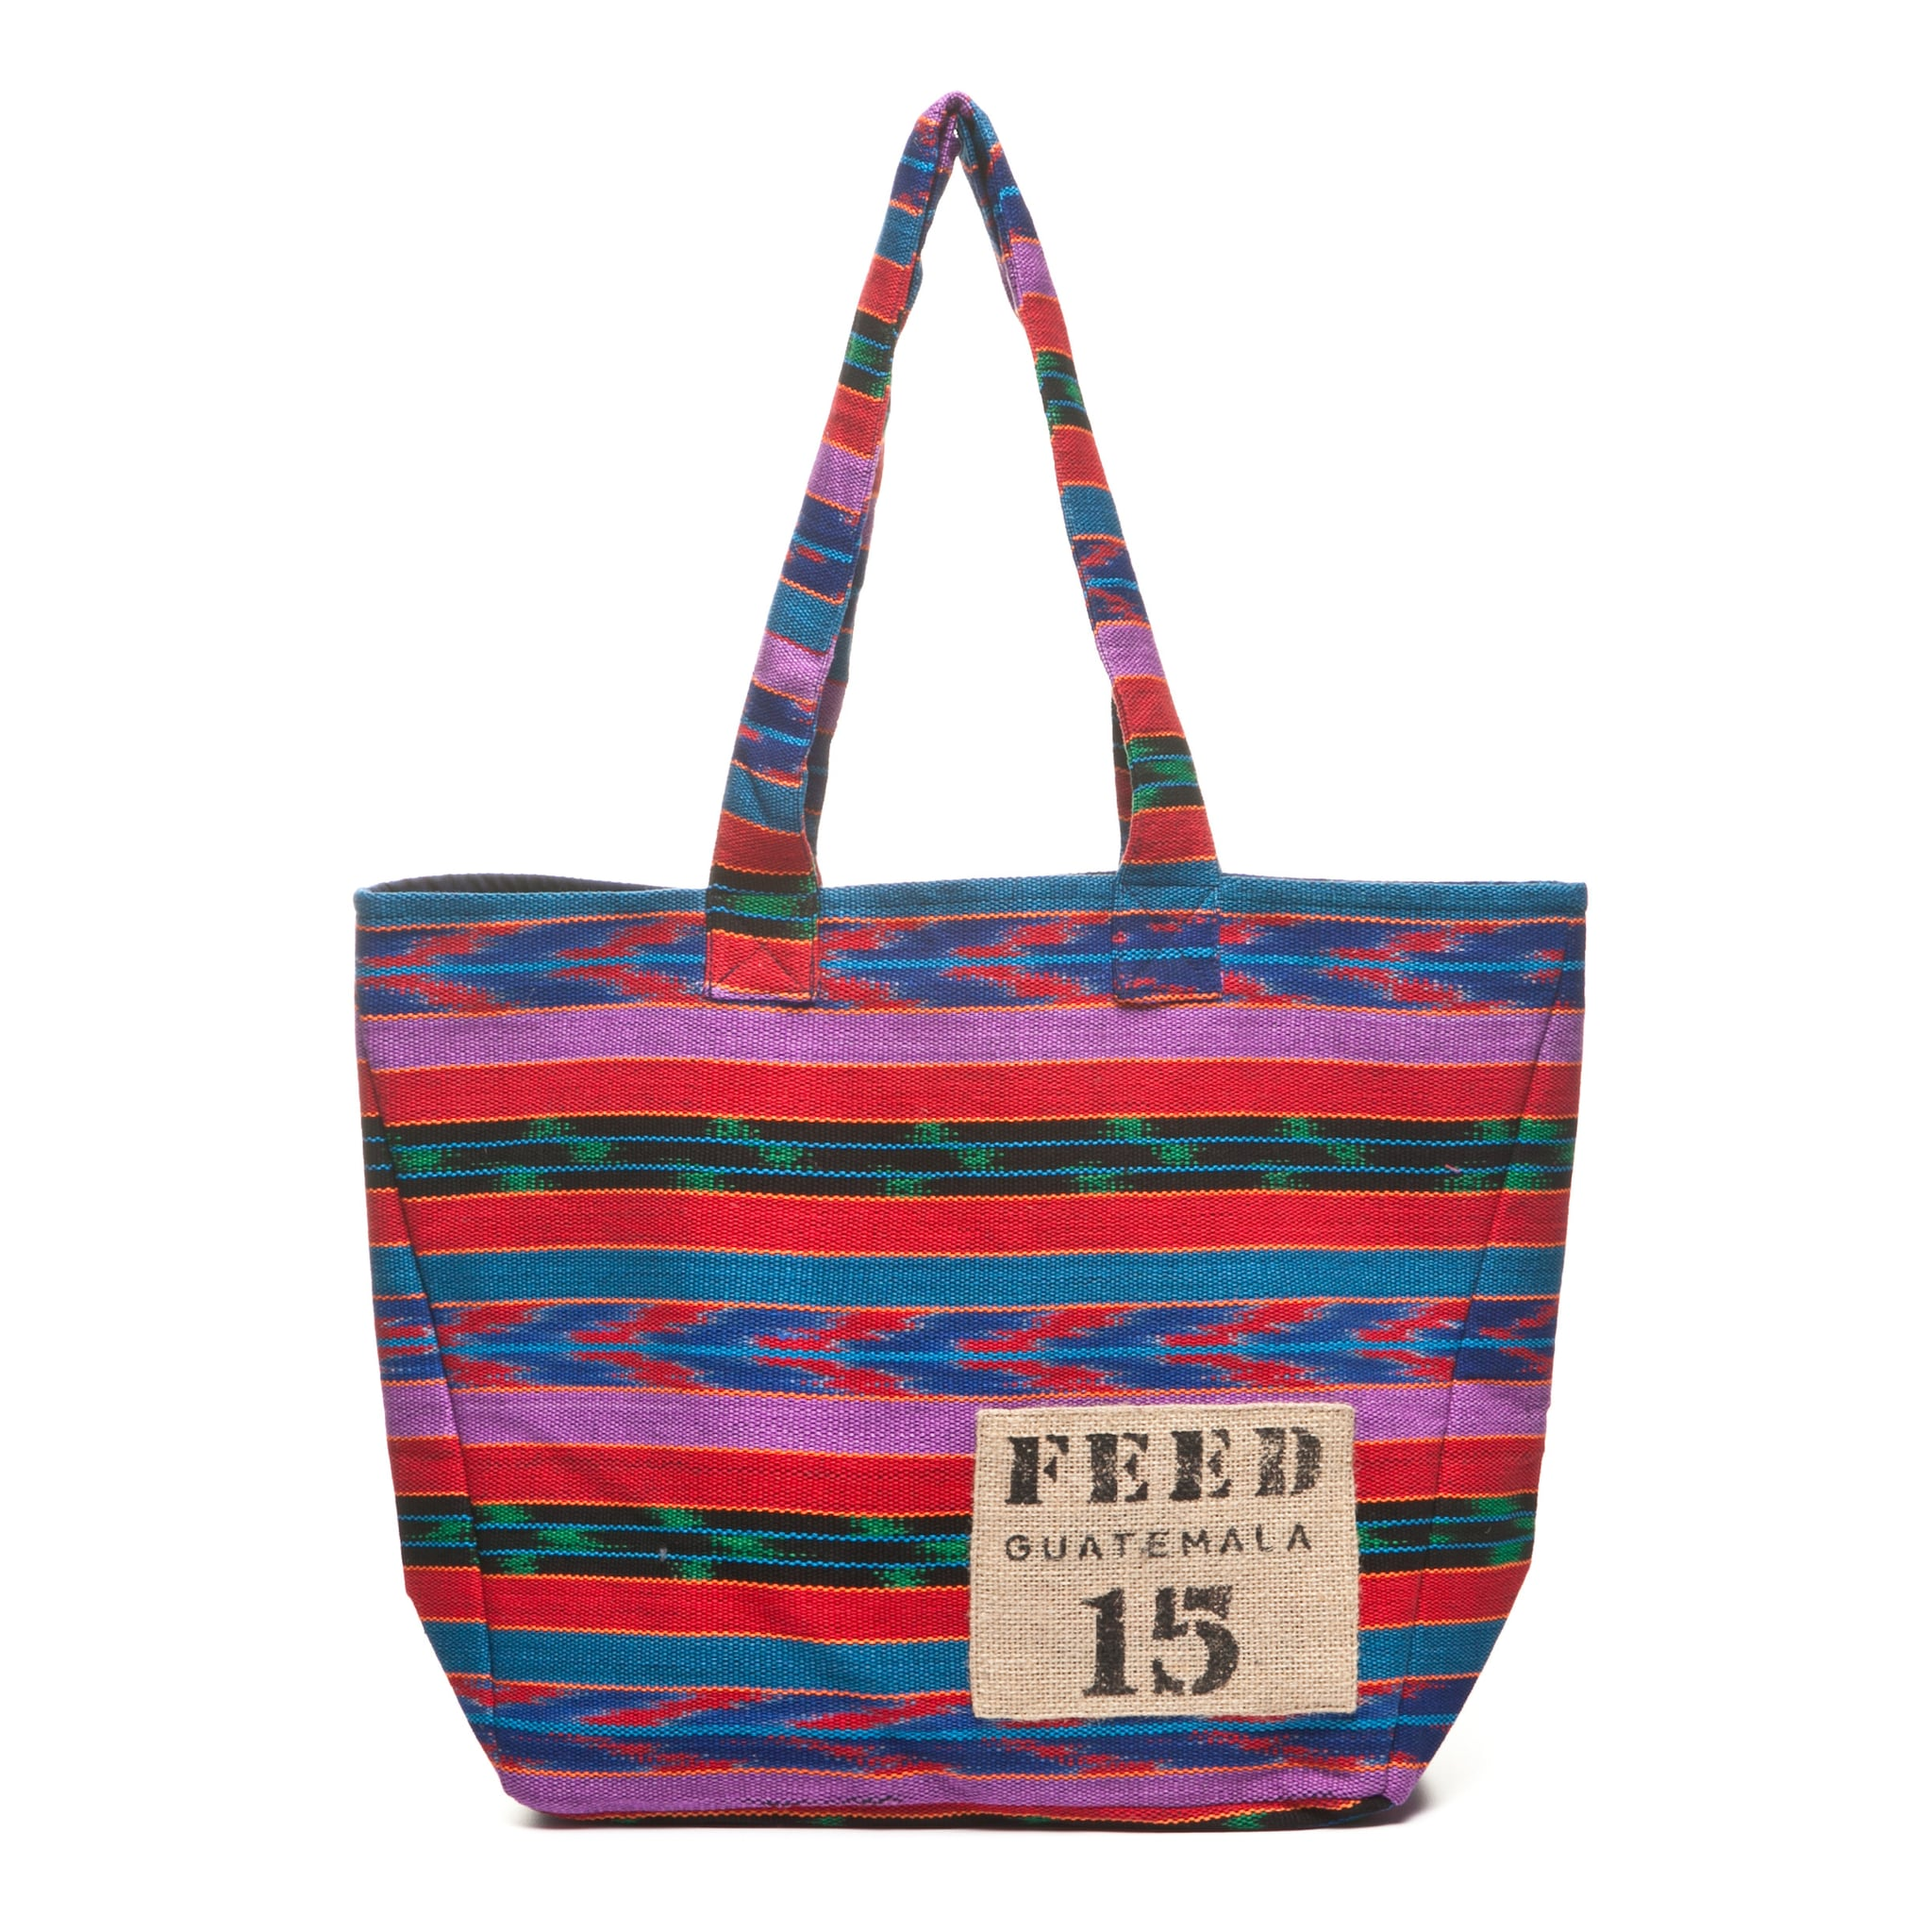 My Girlfriends Would Love This Tote For Their Weekend Farmers